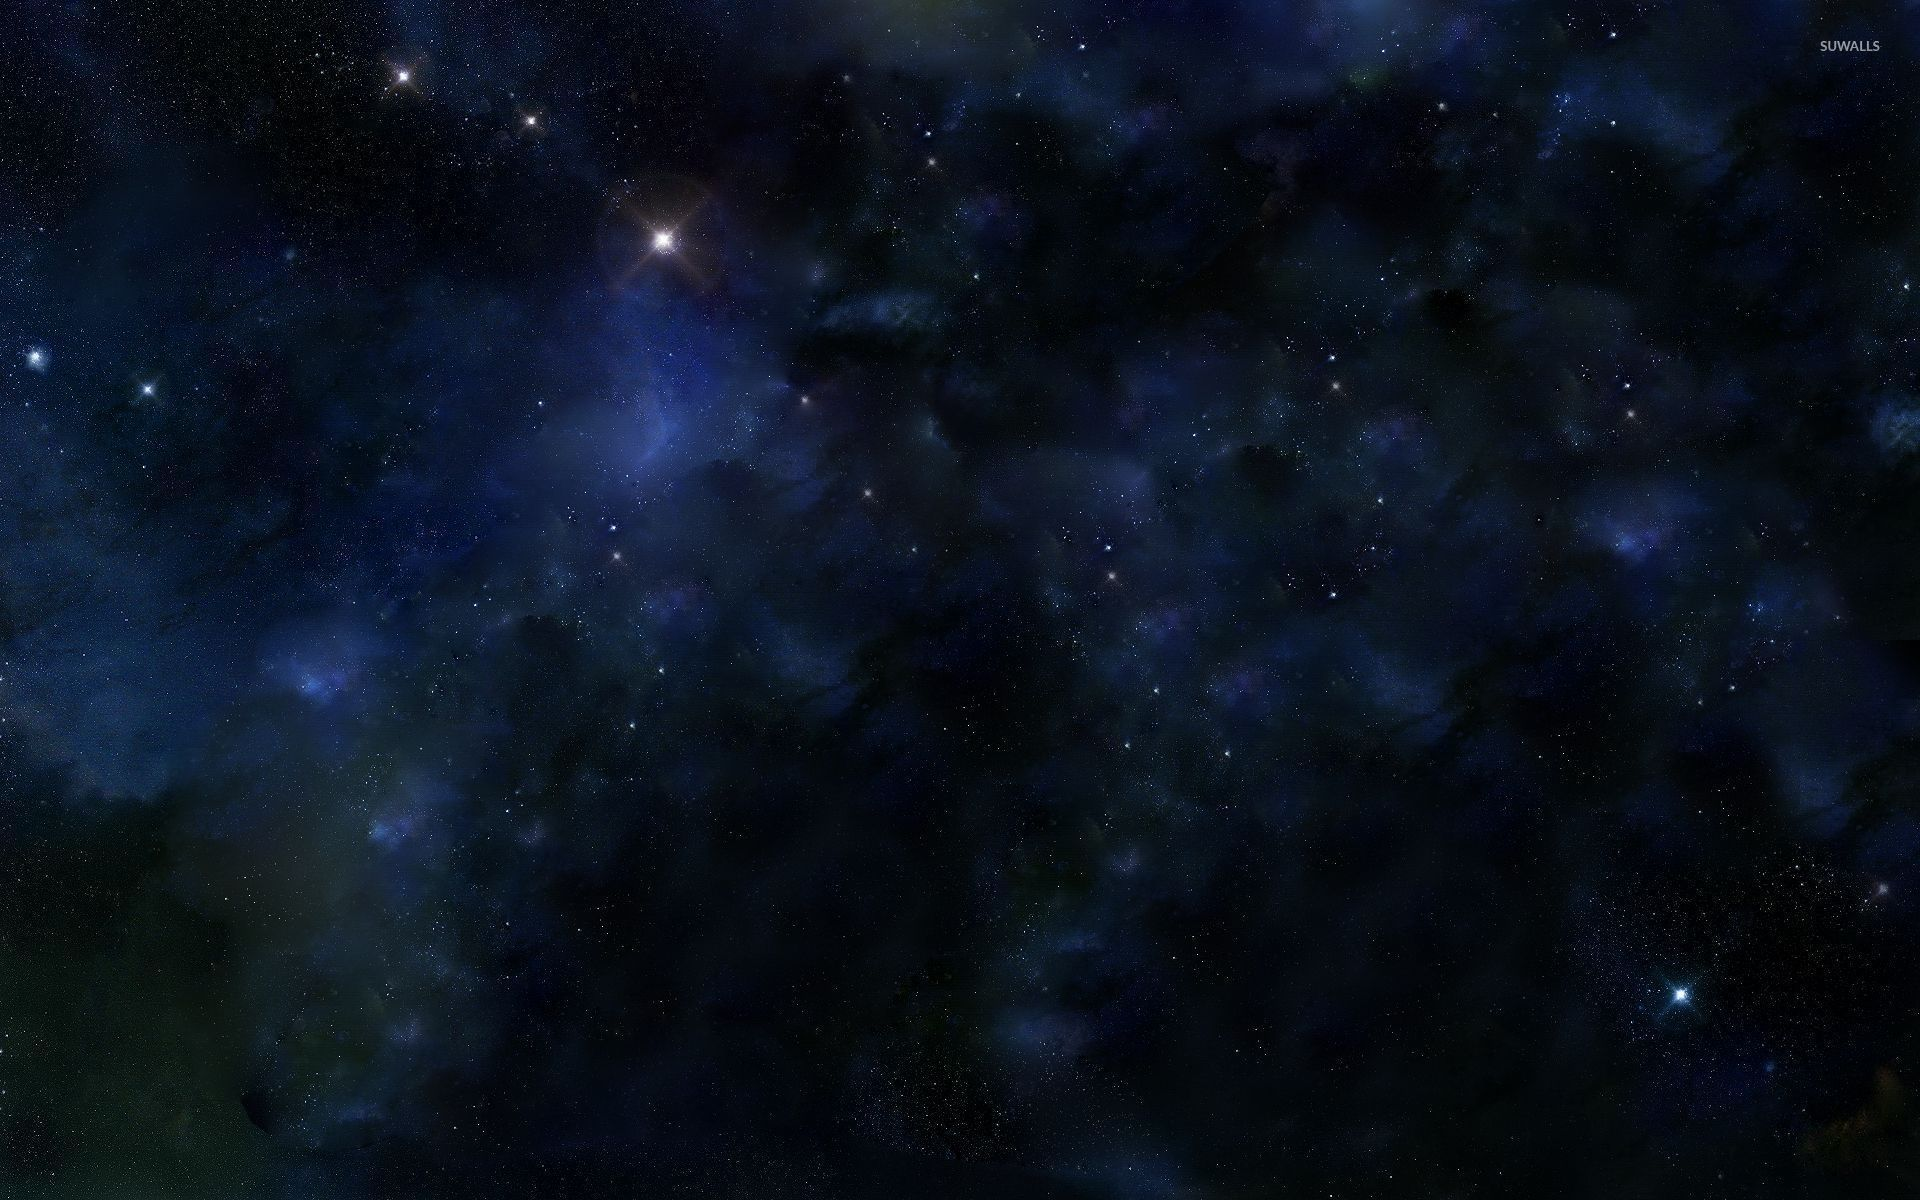 Blue Universe Space Wallpapers Top Free Blue Universe Space Backgrounds Wallpaperaccess